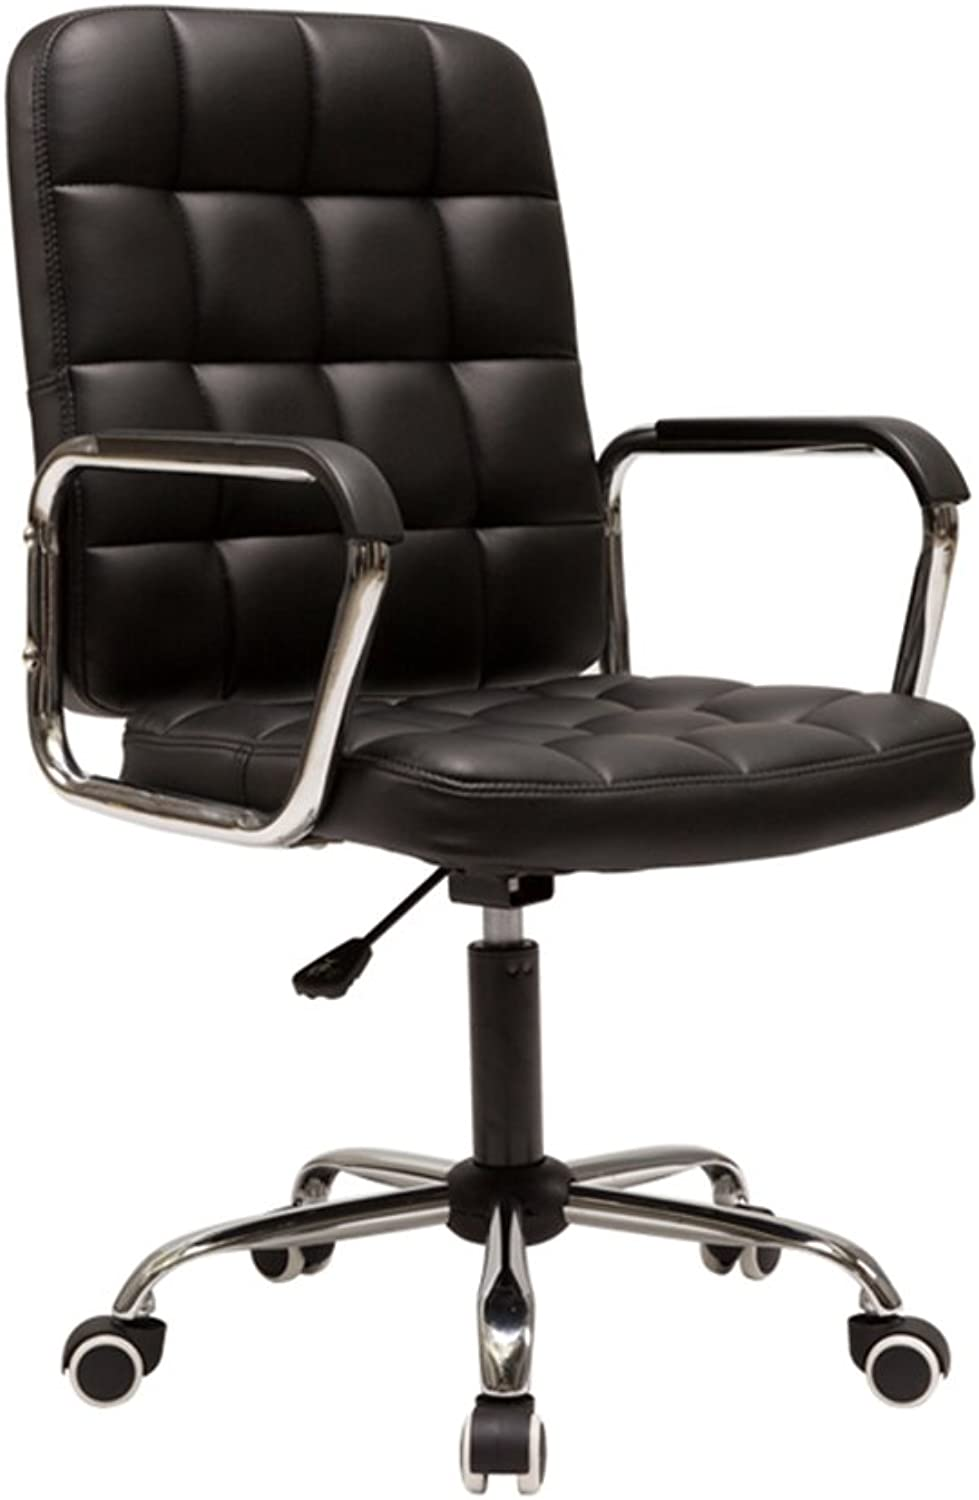 Pulley feet can be redated Office Chair Leather backrest Chair Lift 56  56  99cm (color   Black)